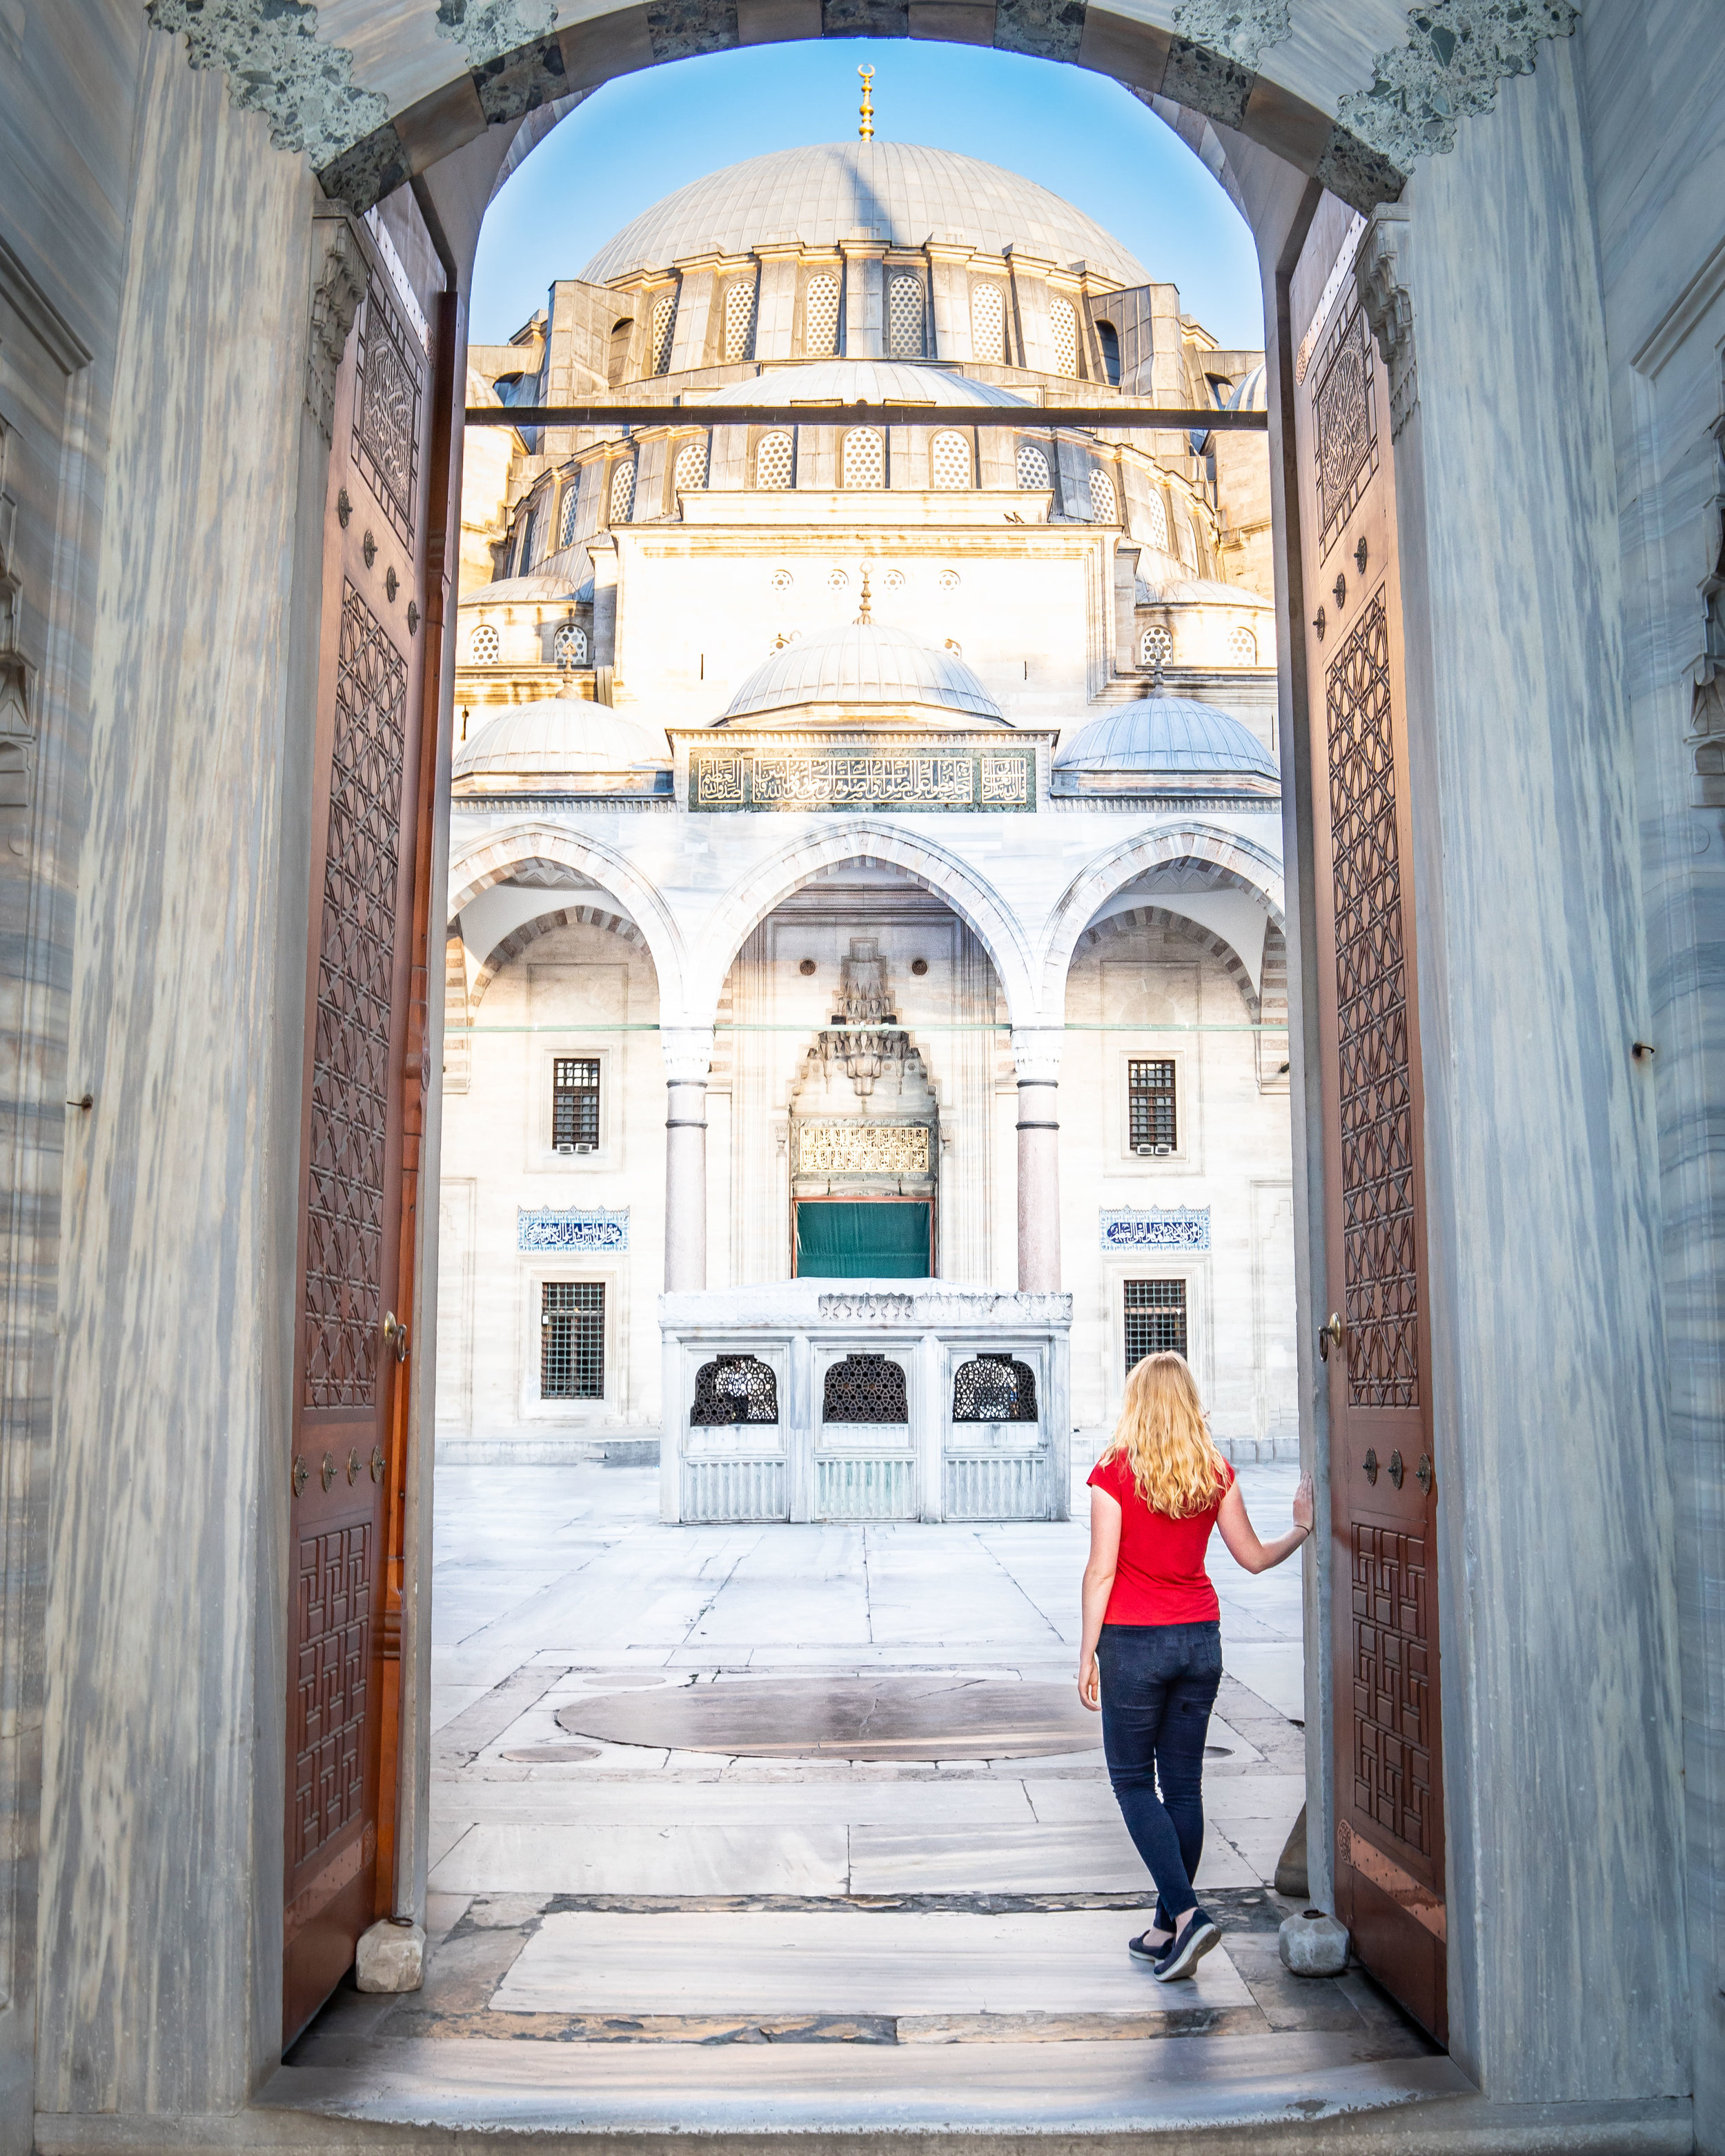 Suleymaniye Mosque Istanbul - Instagrammable Places in Turkey